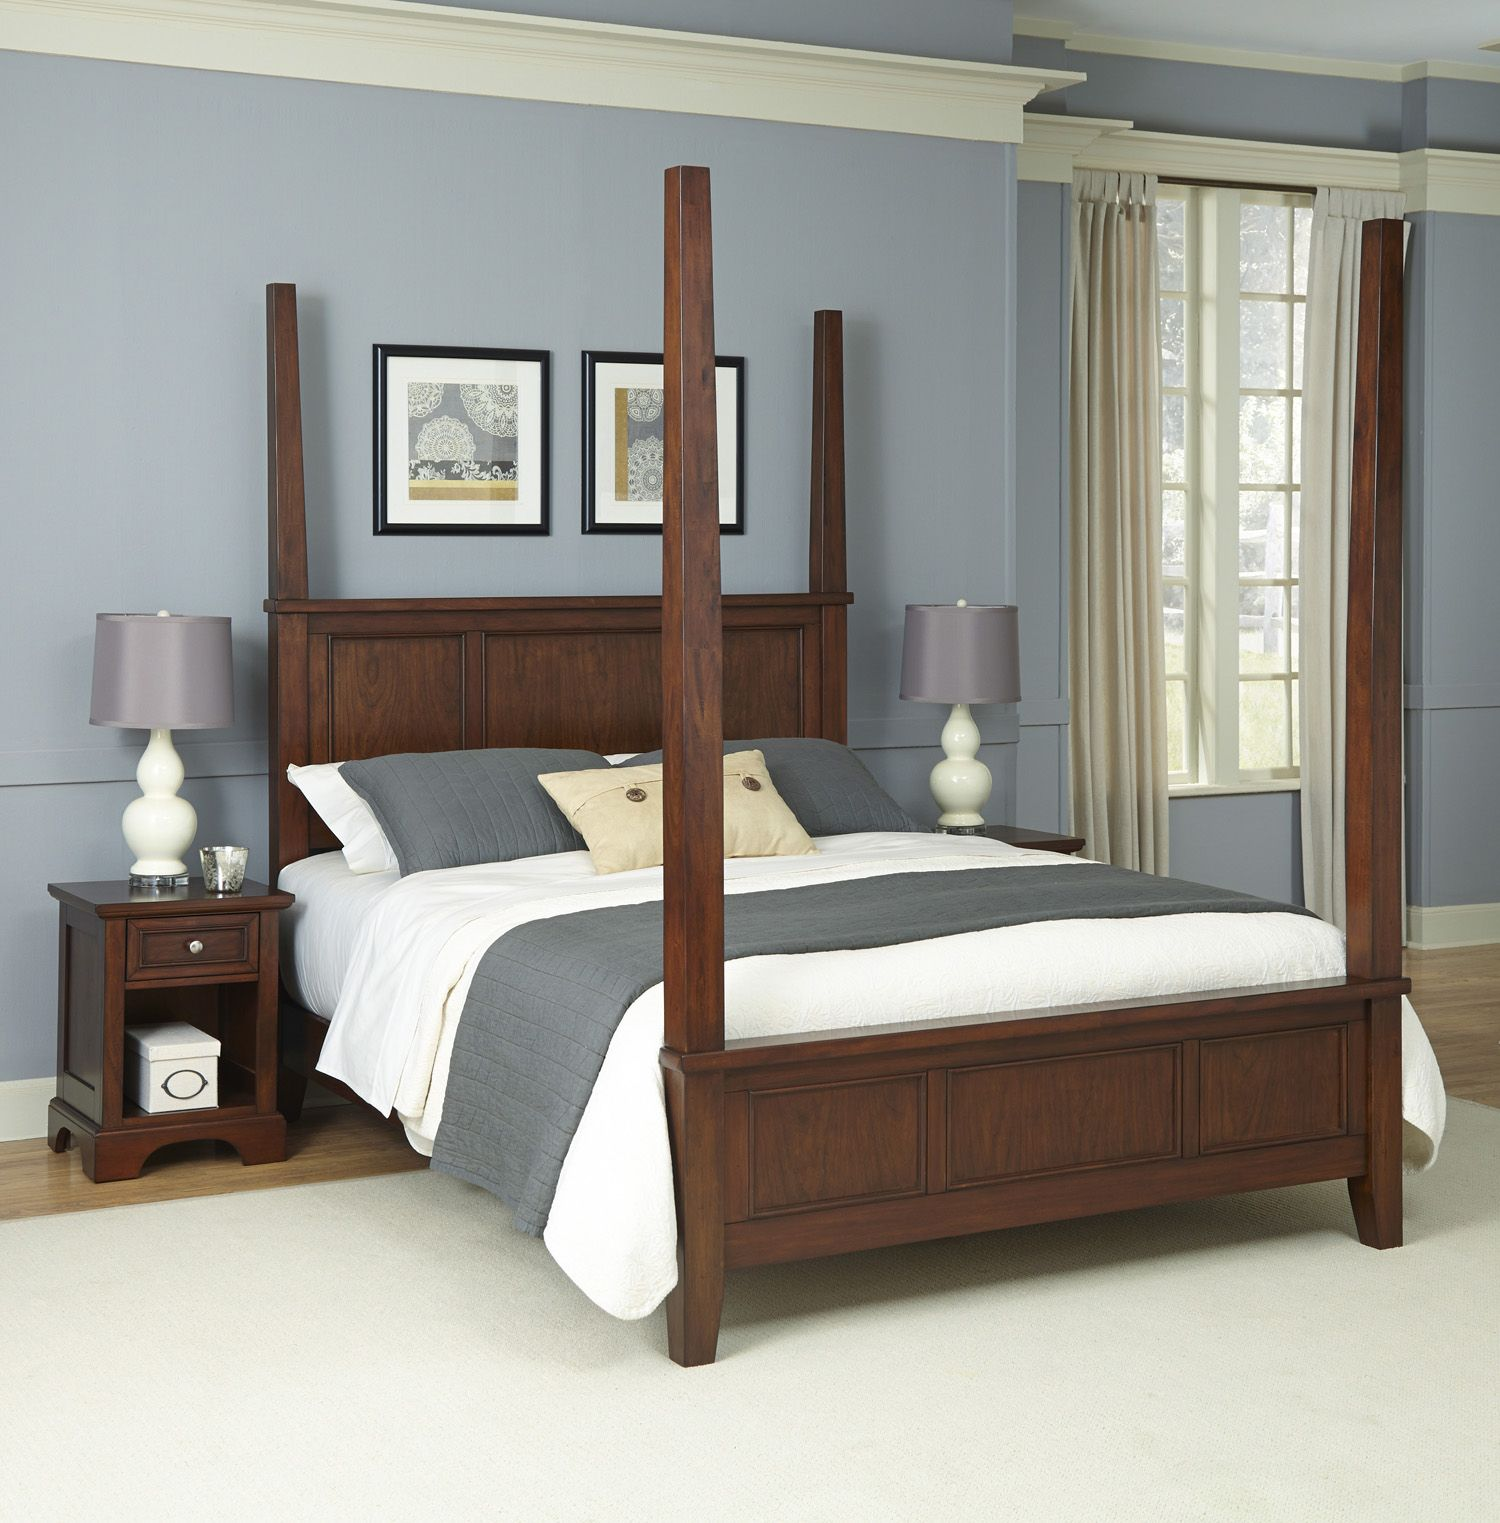 Epic Home Styles piece Chesapeake Nightstands and Poster Bedroom Set